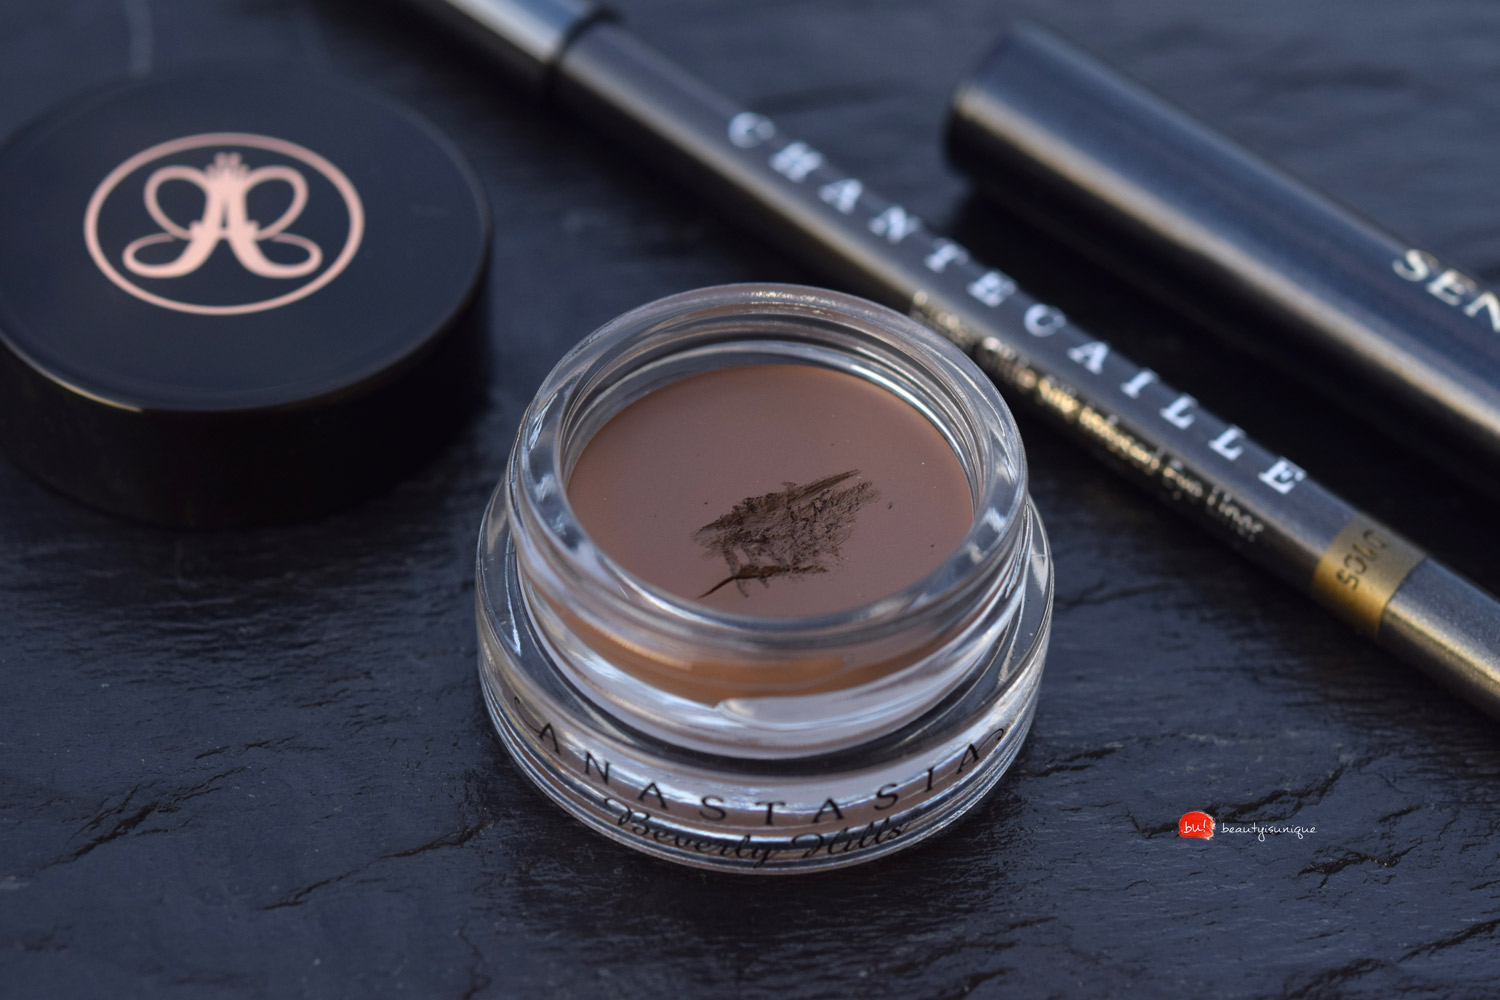 Anastasia-beverly-hills-dipbrow-pomade-soft-brown